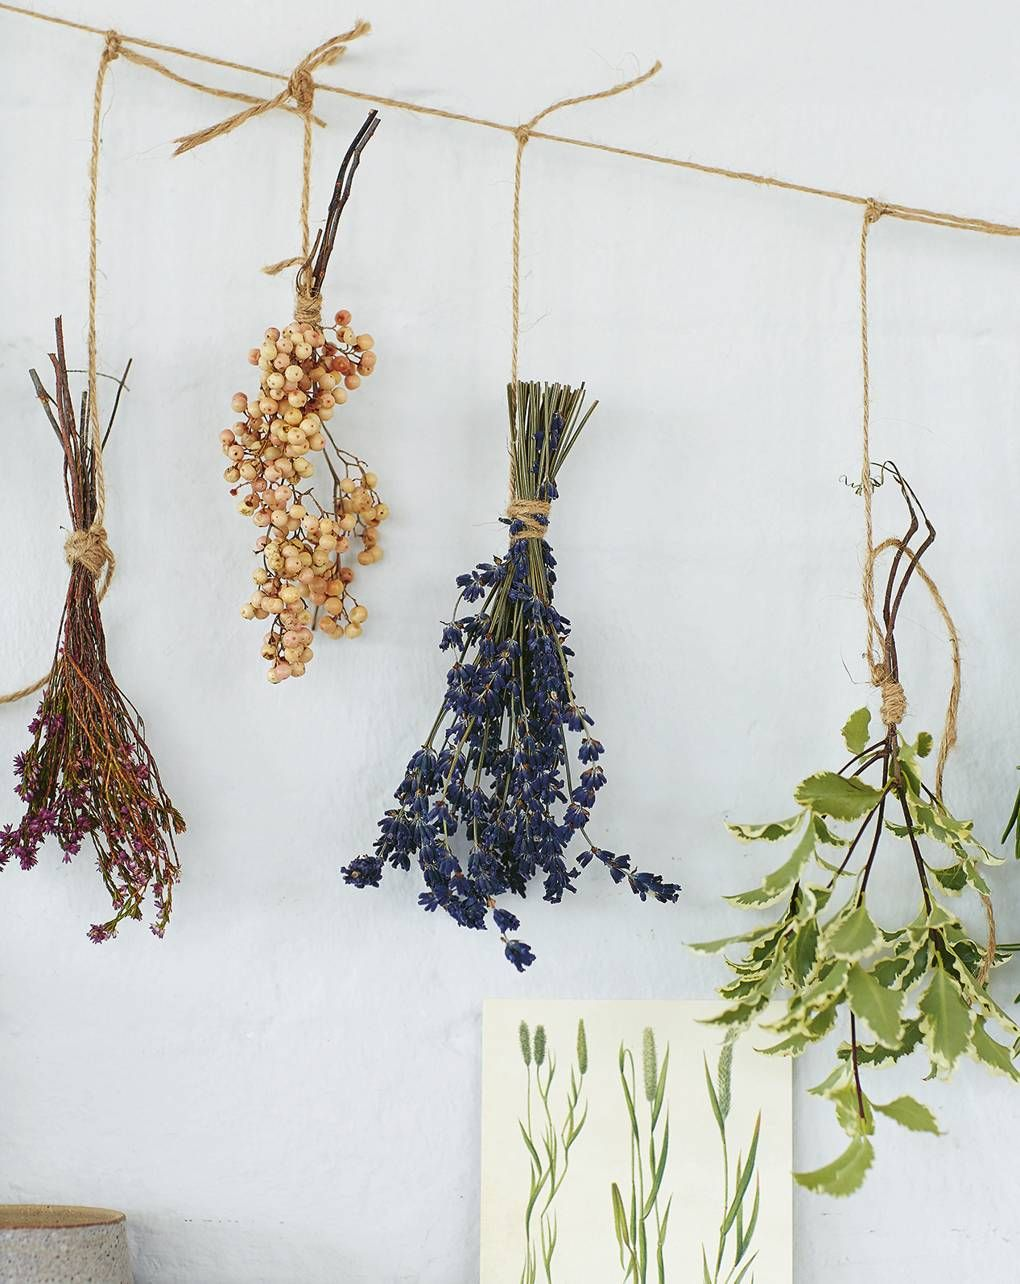 How to dry flowers | House & Garden